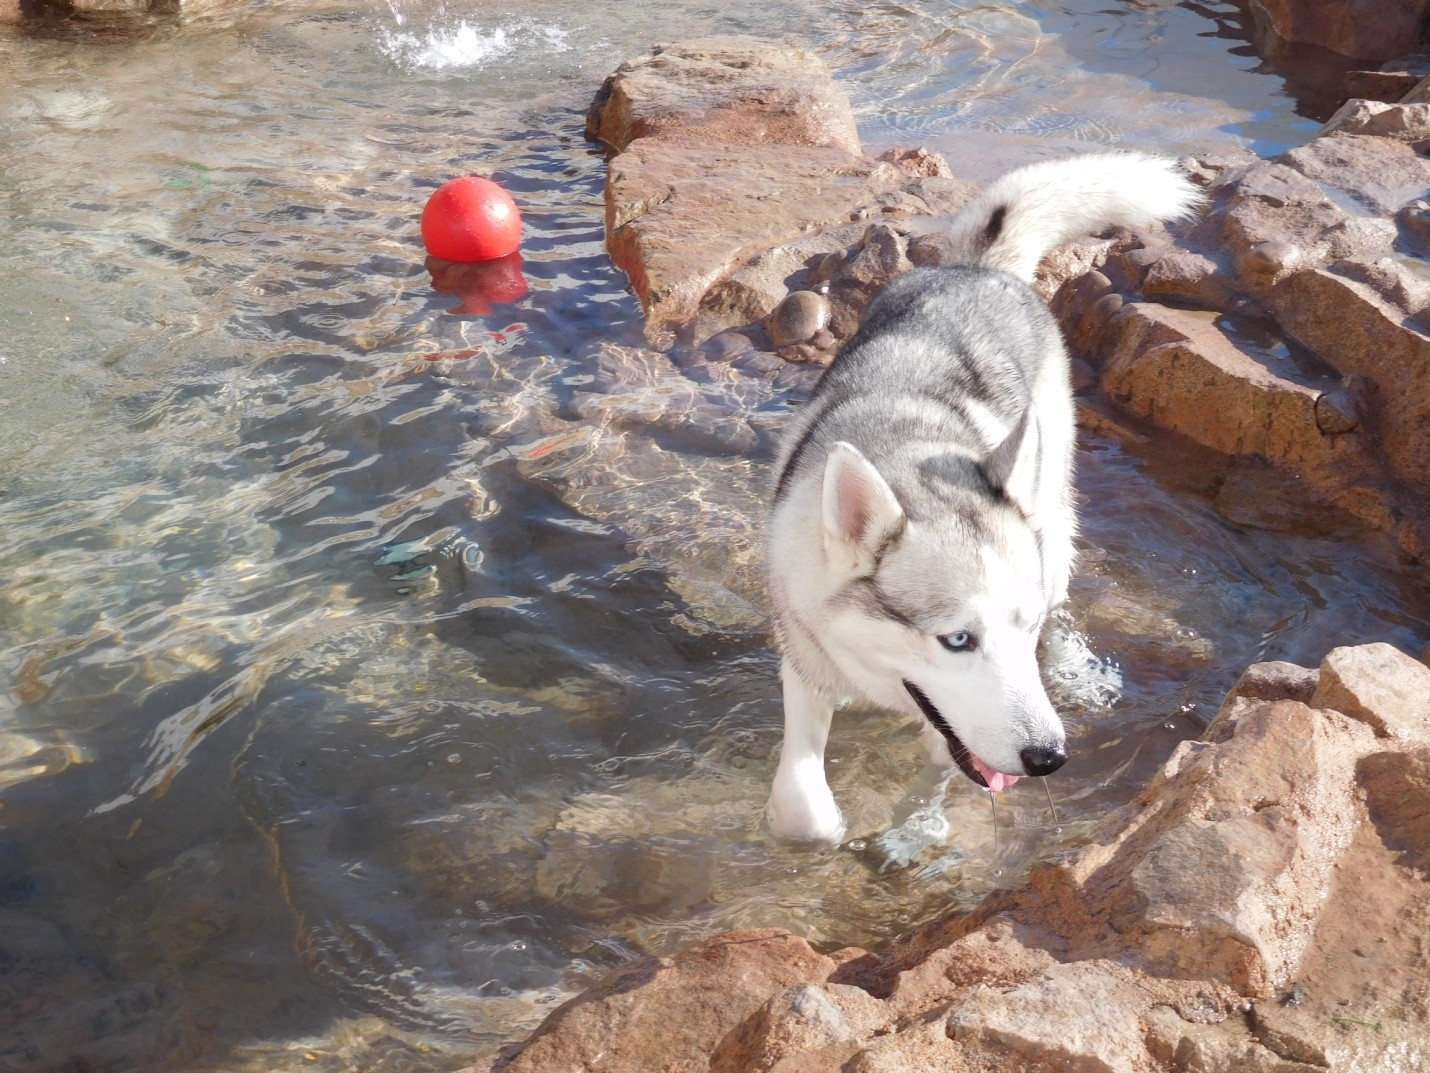 Yoskie (Siberian Husky) playing in one of the pools